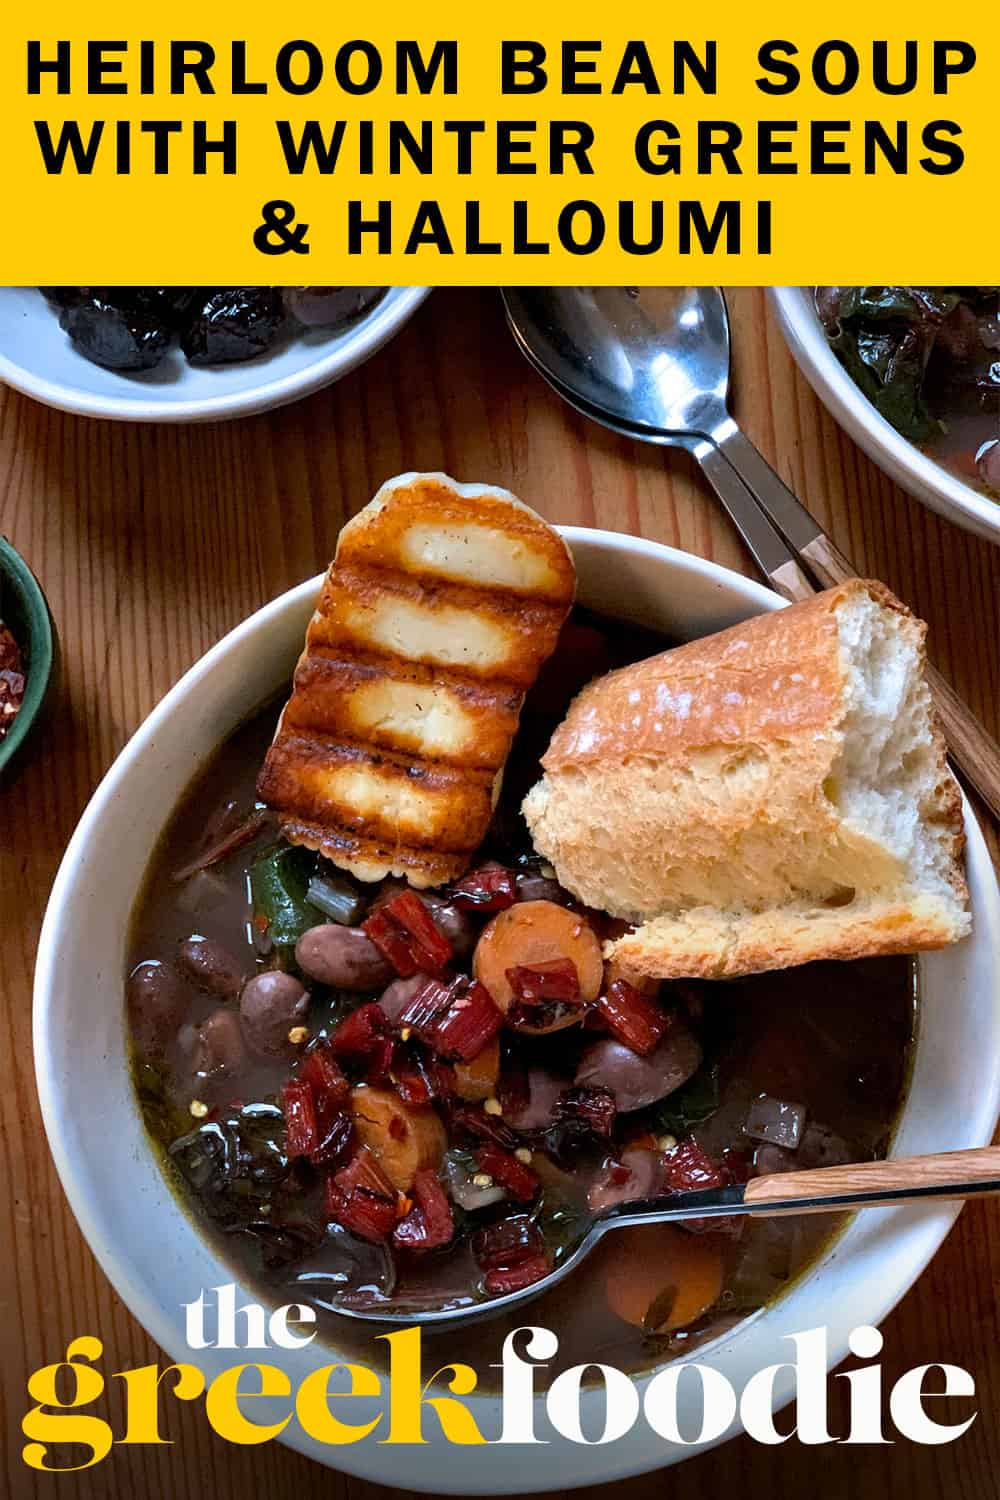 Heirloom Bean Soup & Winter Greens